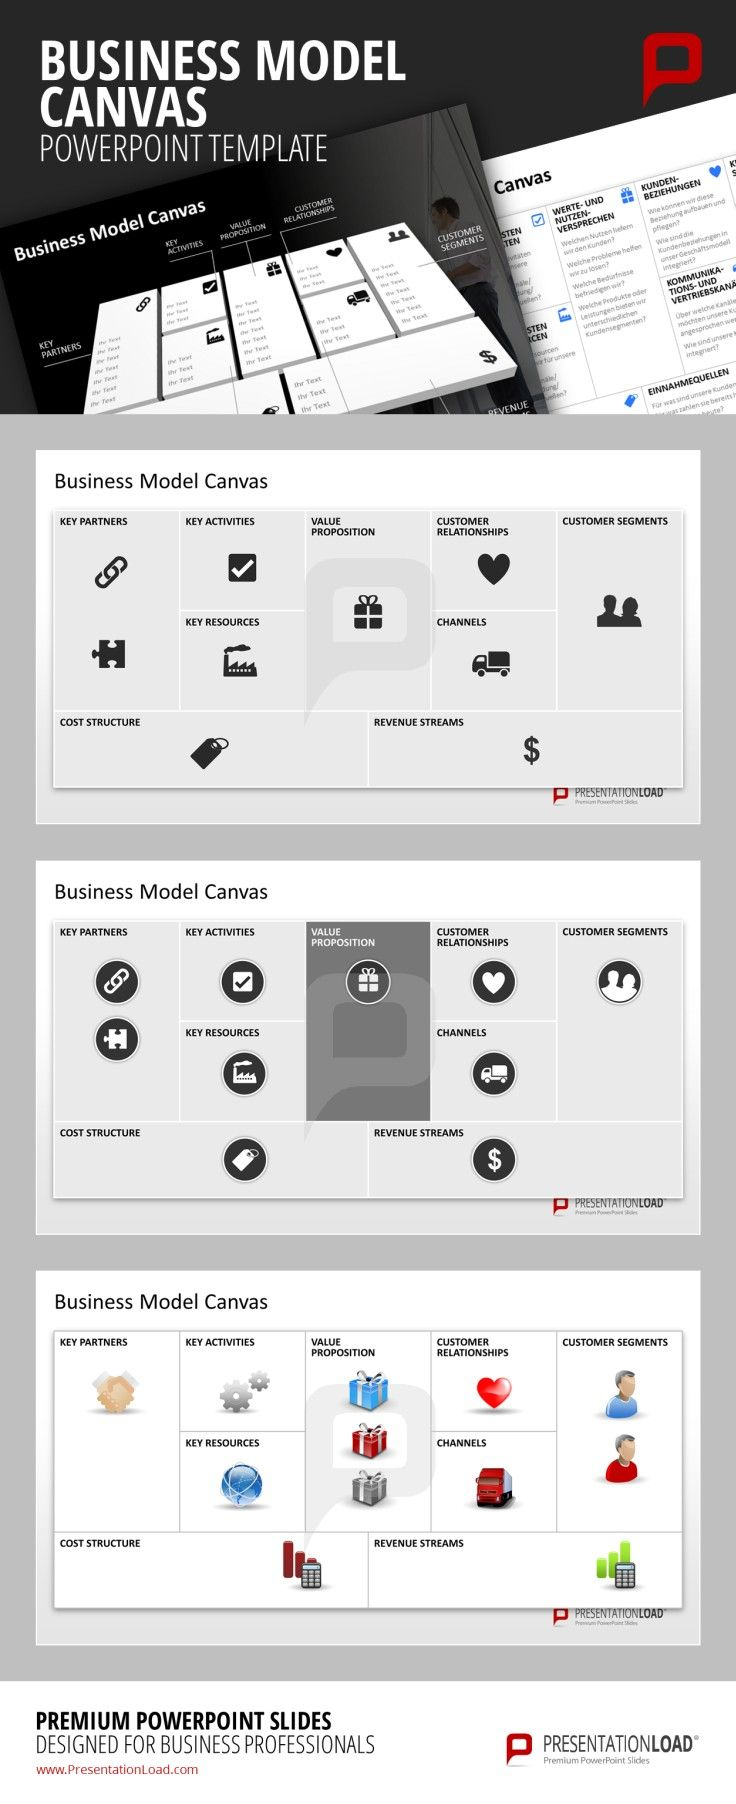 Business model canvas powerpoint template the several business model business model canvas powerpoint template the several business model canvas templates for powerpoint come in different accmission Images